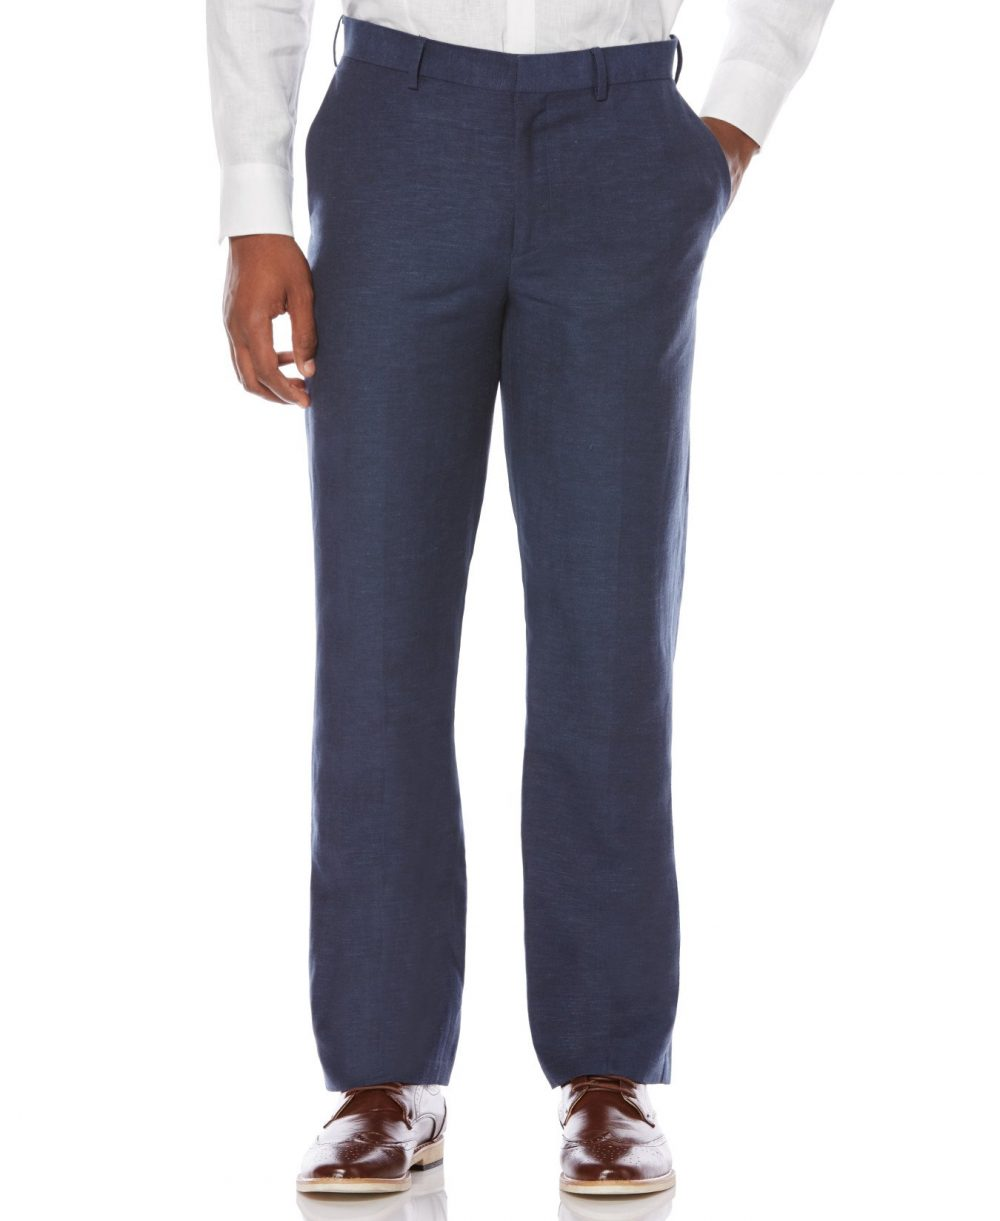 Cubavera Men's Big & Tall Linen Blend Flat Front Pant (Dress Blues) - Size 48